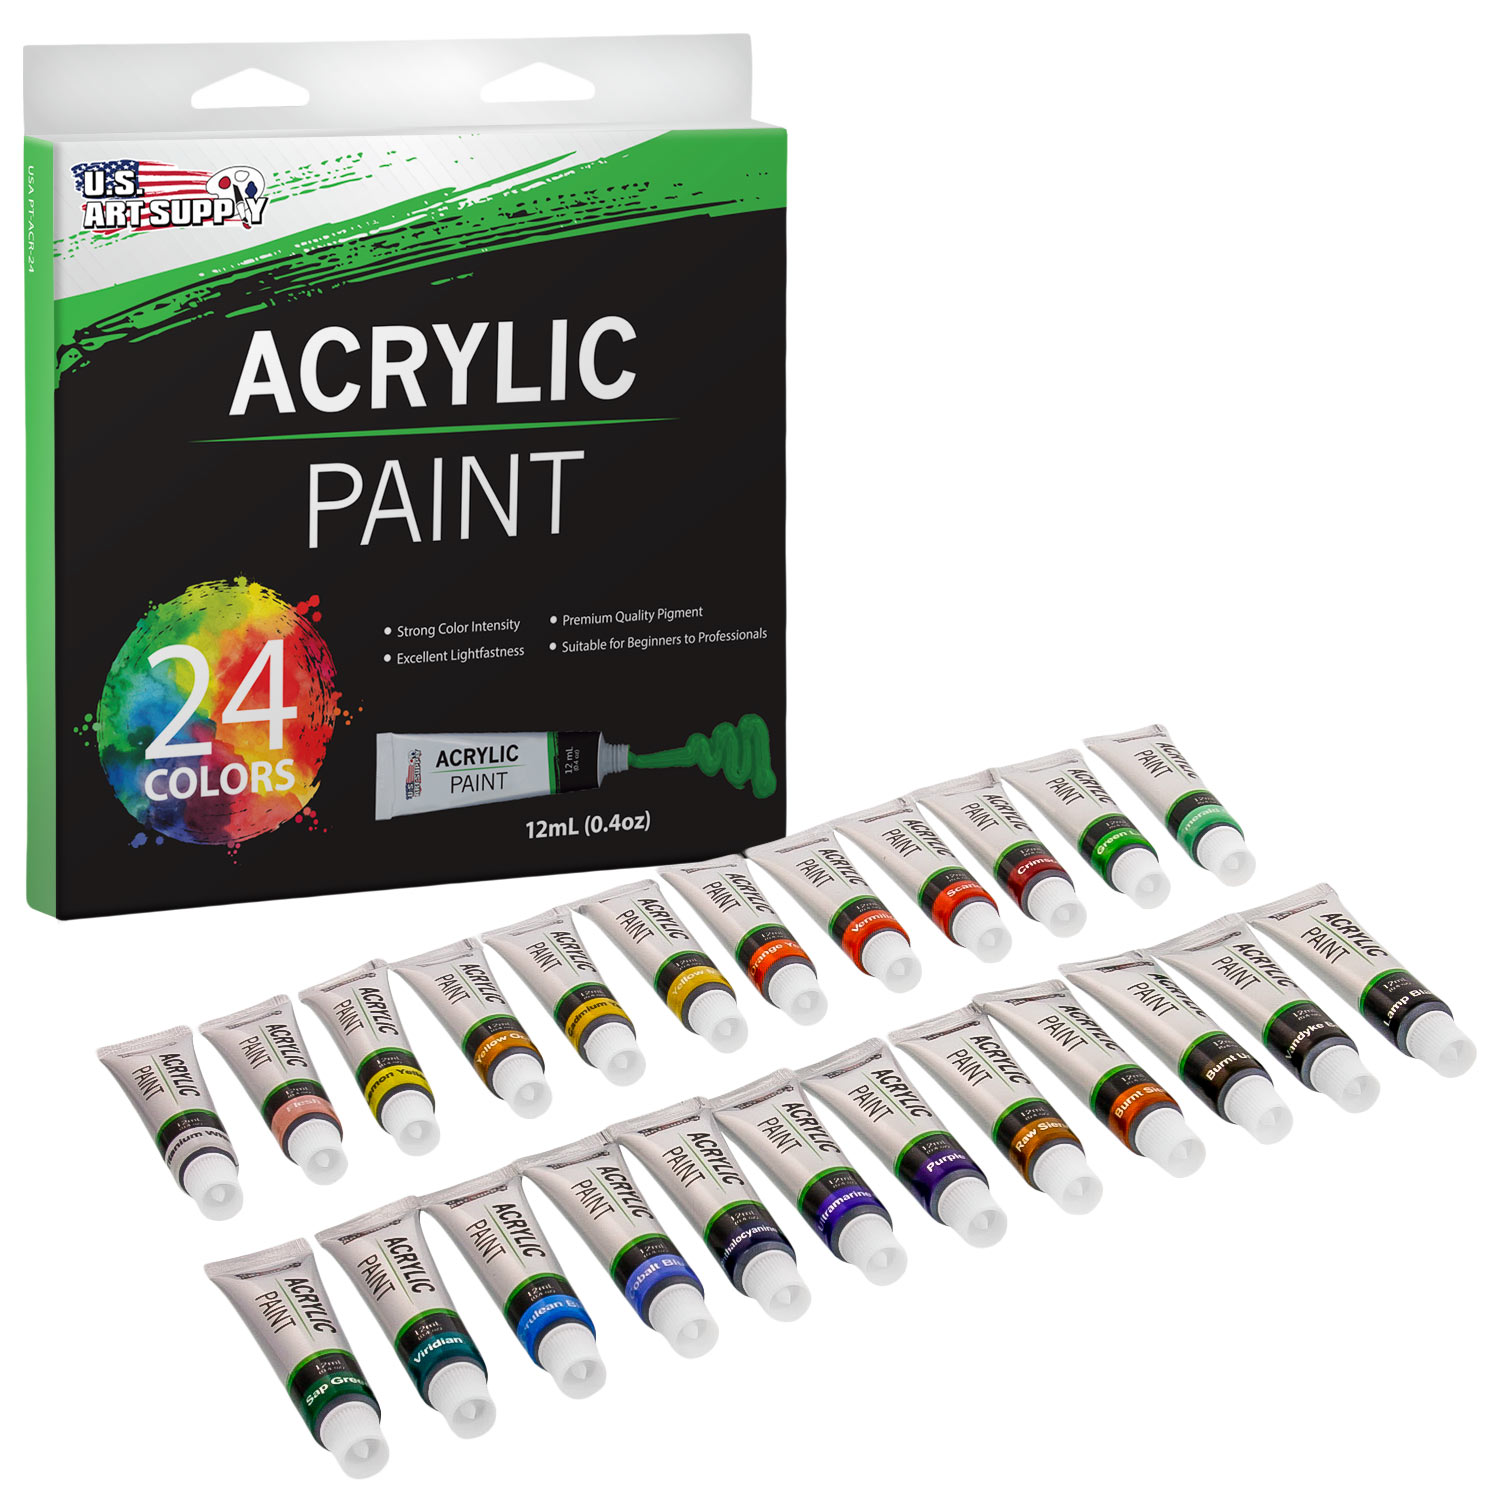 24 Color Set of Acrylic Paint in 12ml Tubes - Rich Vivid Colors for Artists, Students